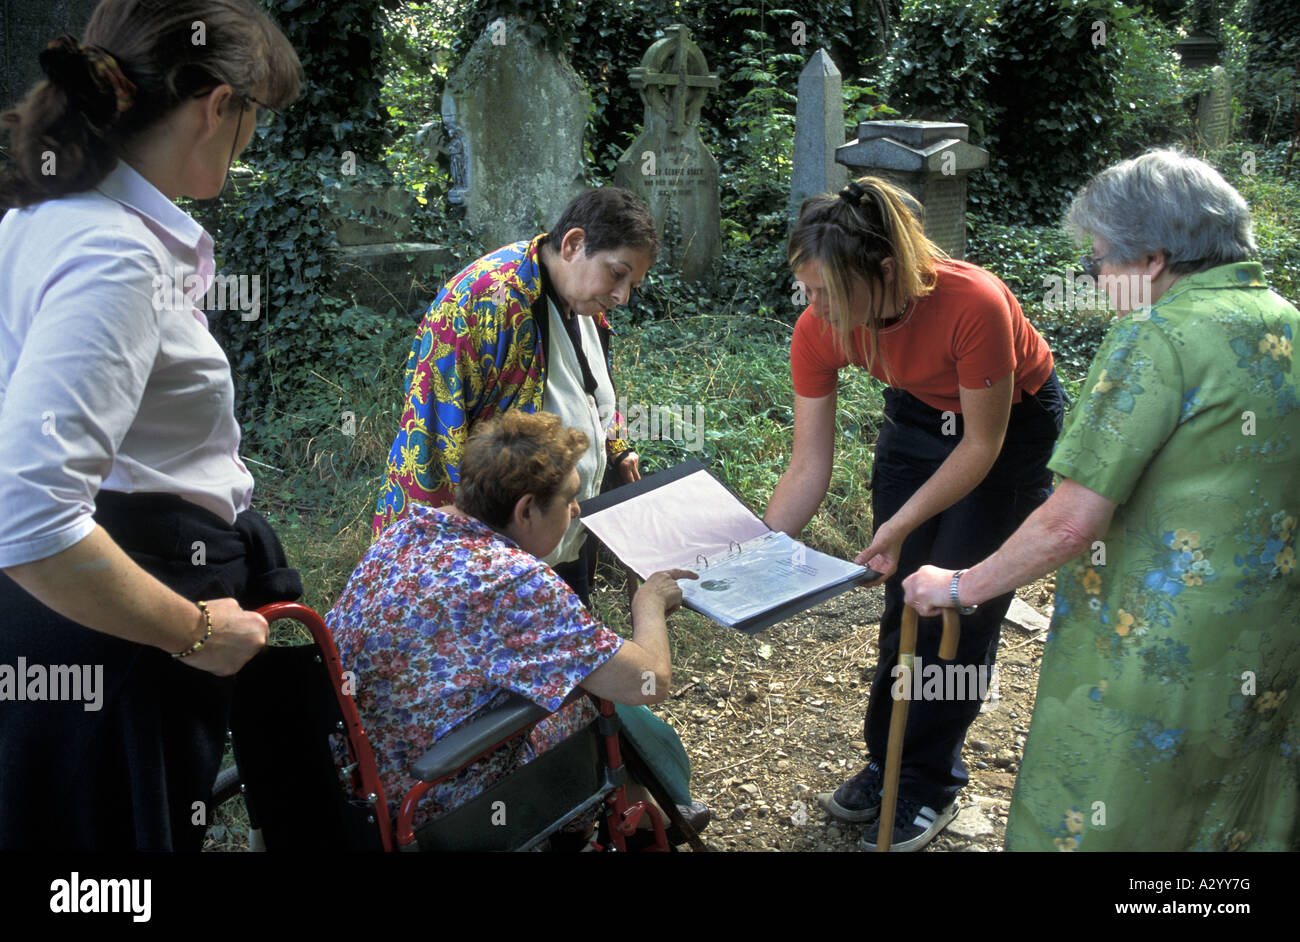 A jewish group on a history tour of Abney Park Local Nature Reserve Stoke Newington London England - Stock Image